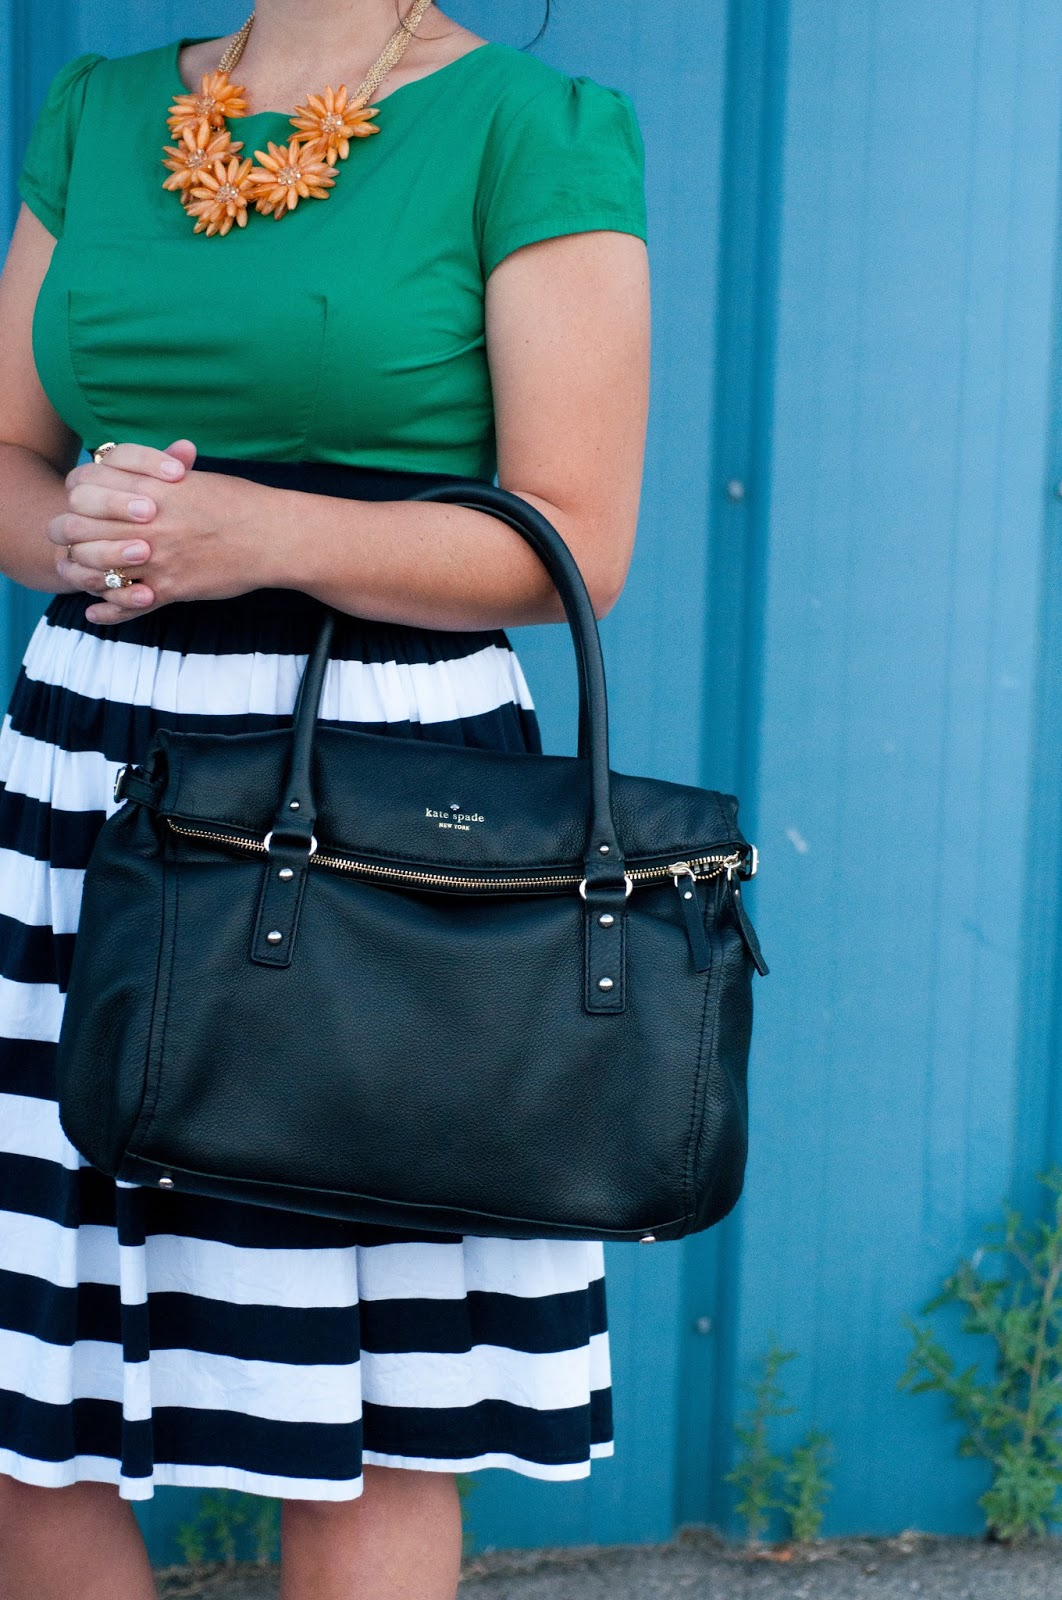 shabby apple gondola dress, shabby apple, kate spade cobble hill handbag, stripe dress, ootd